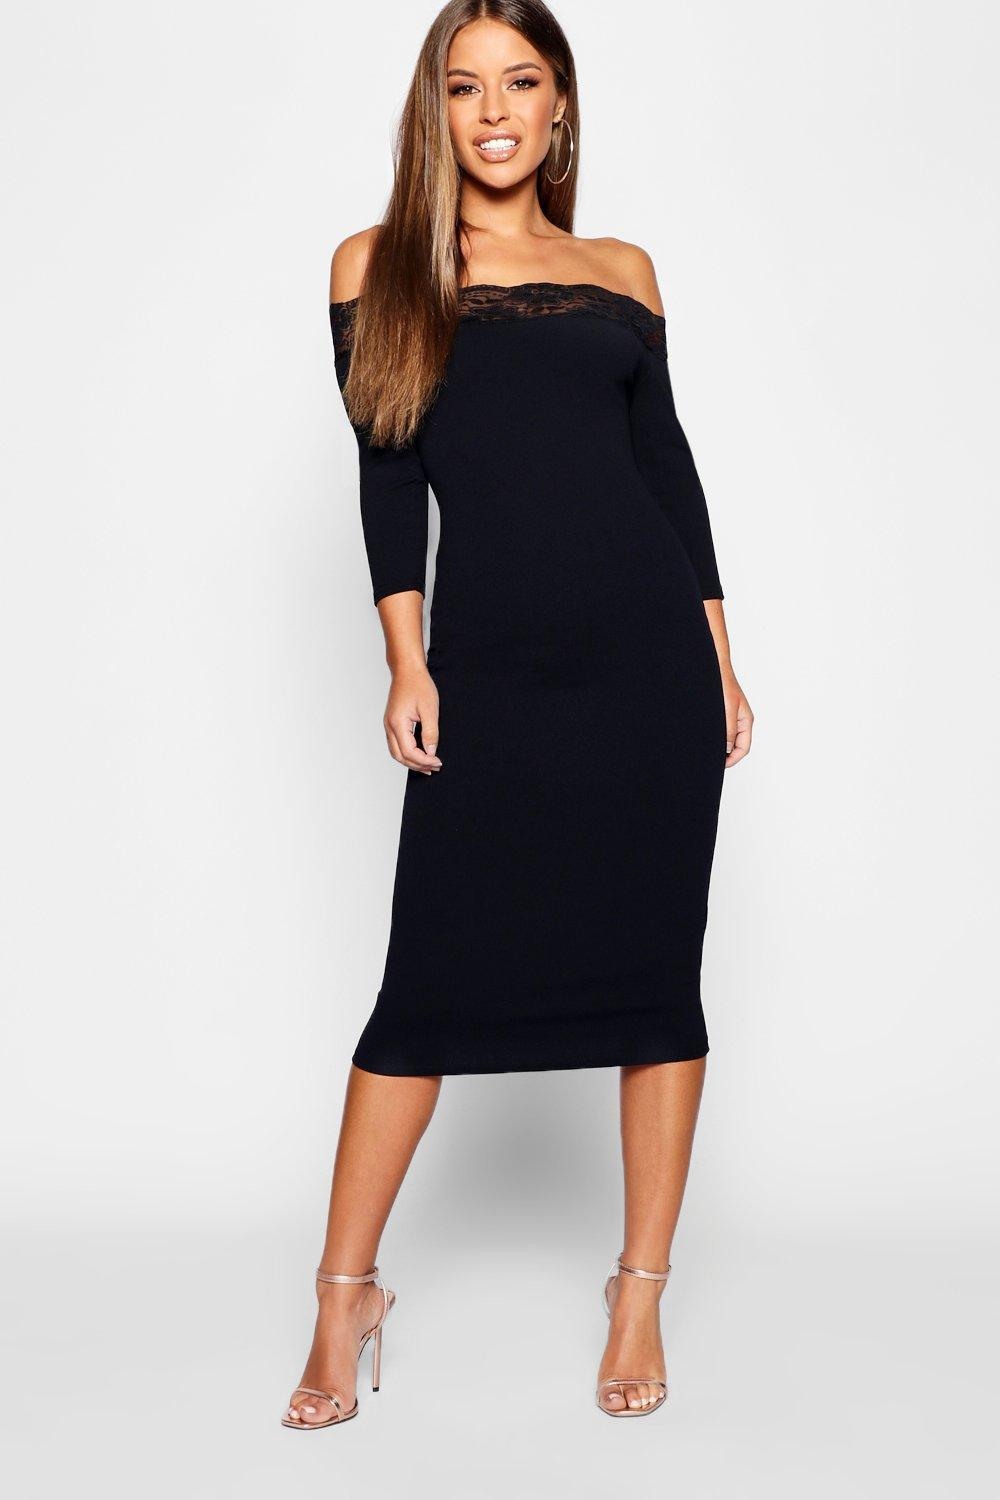 ac20d2c36ea1 Gallery. Previously sold at: Boohoo · Women's Midi Dresses ...